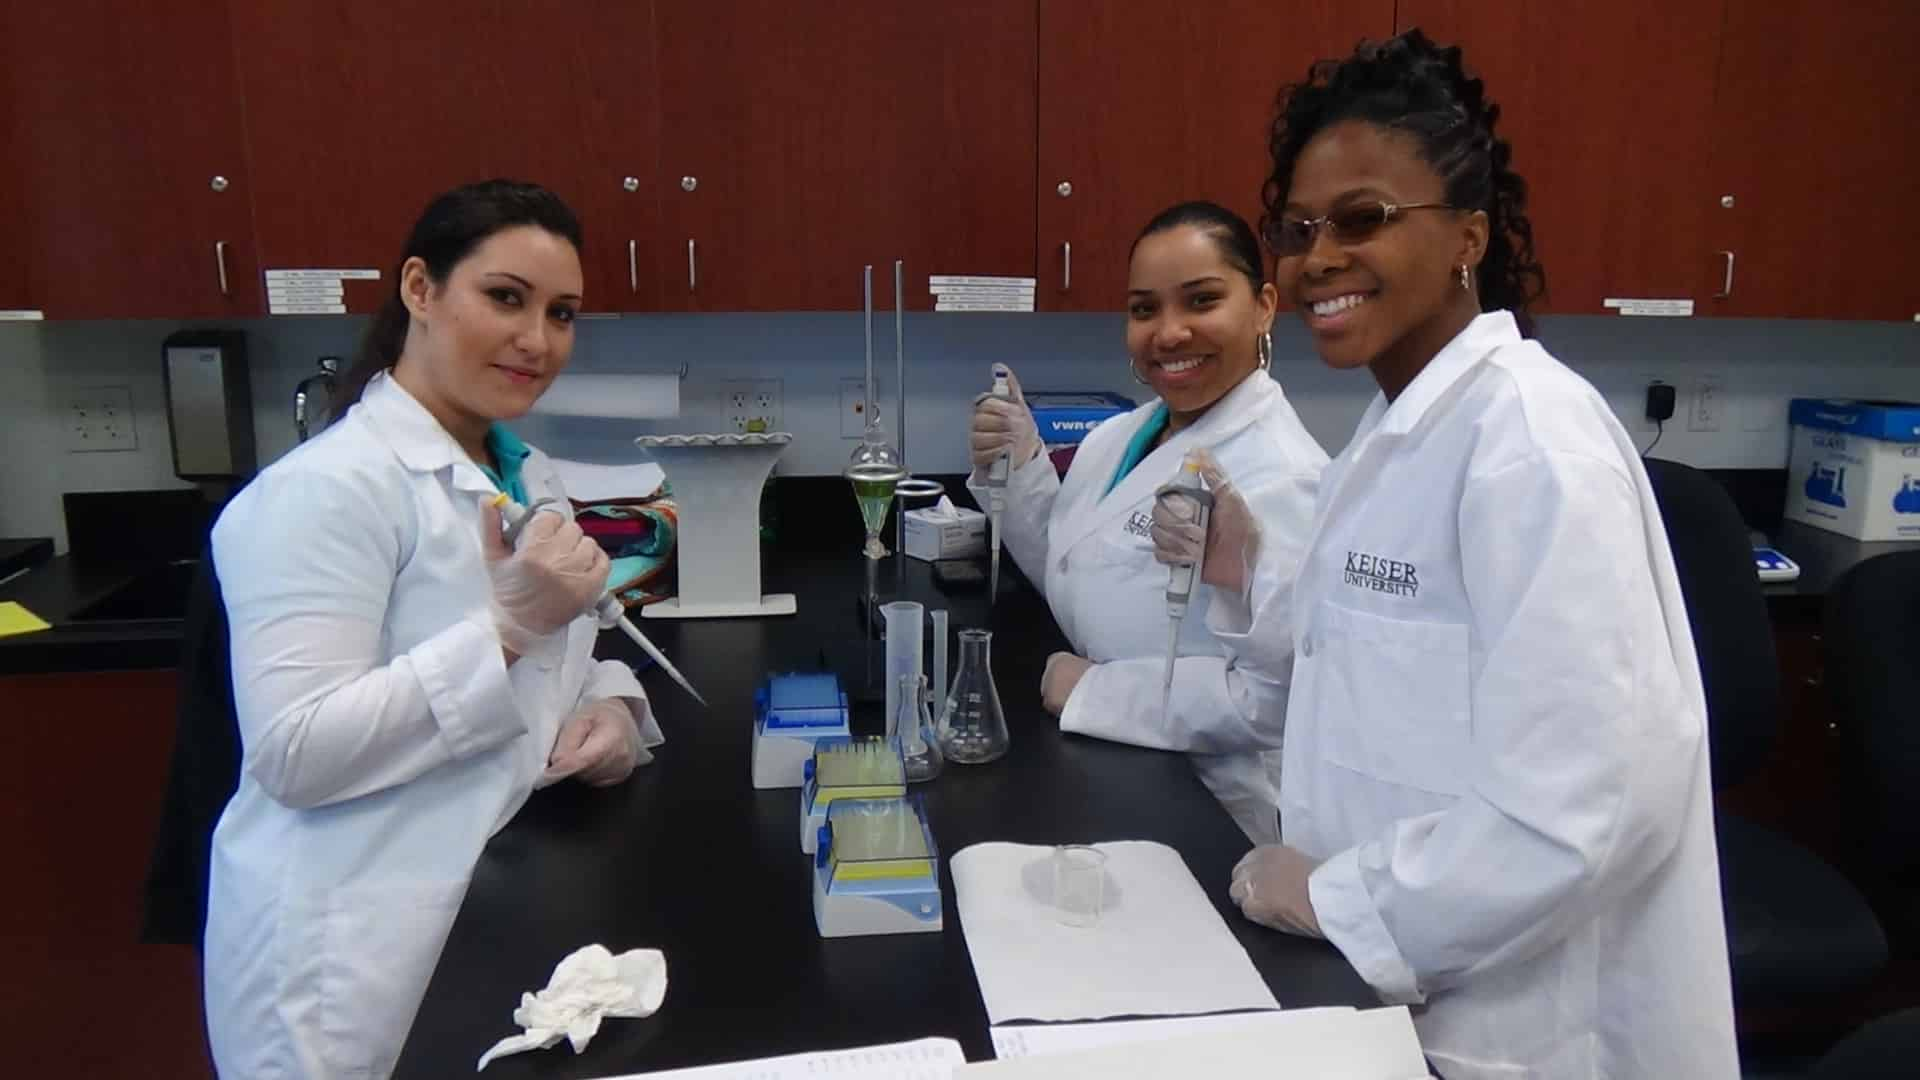 Fort Myers Students Learn How to Separate Organic Compounds and Inorganic Compounds